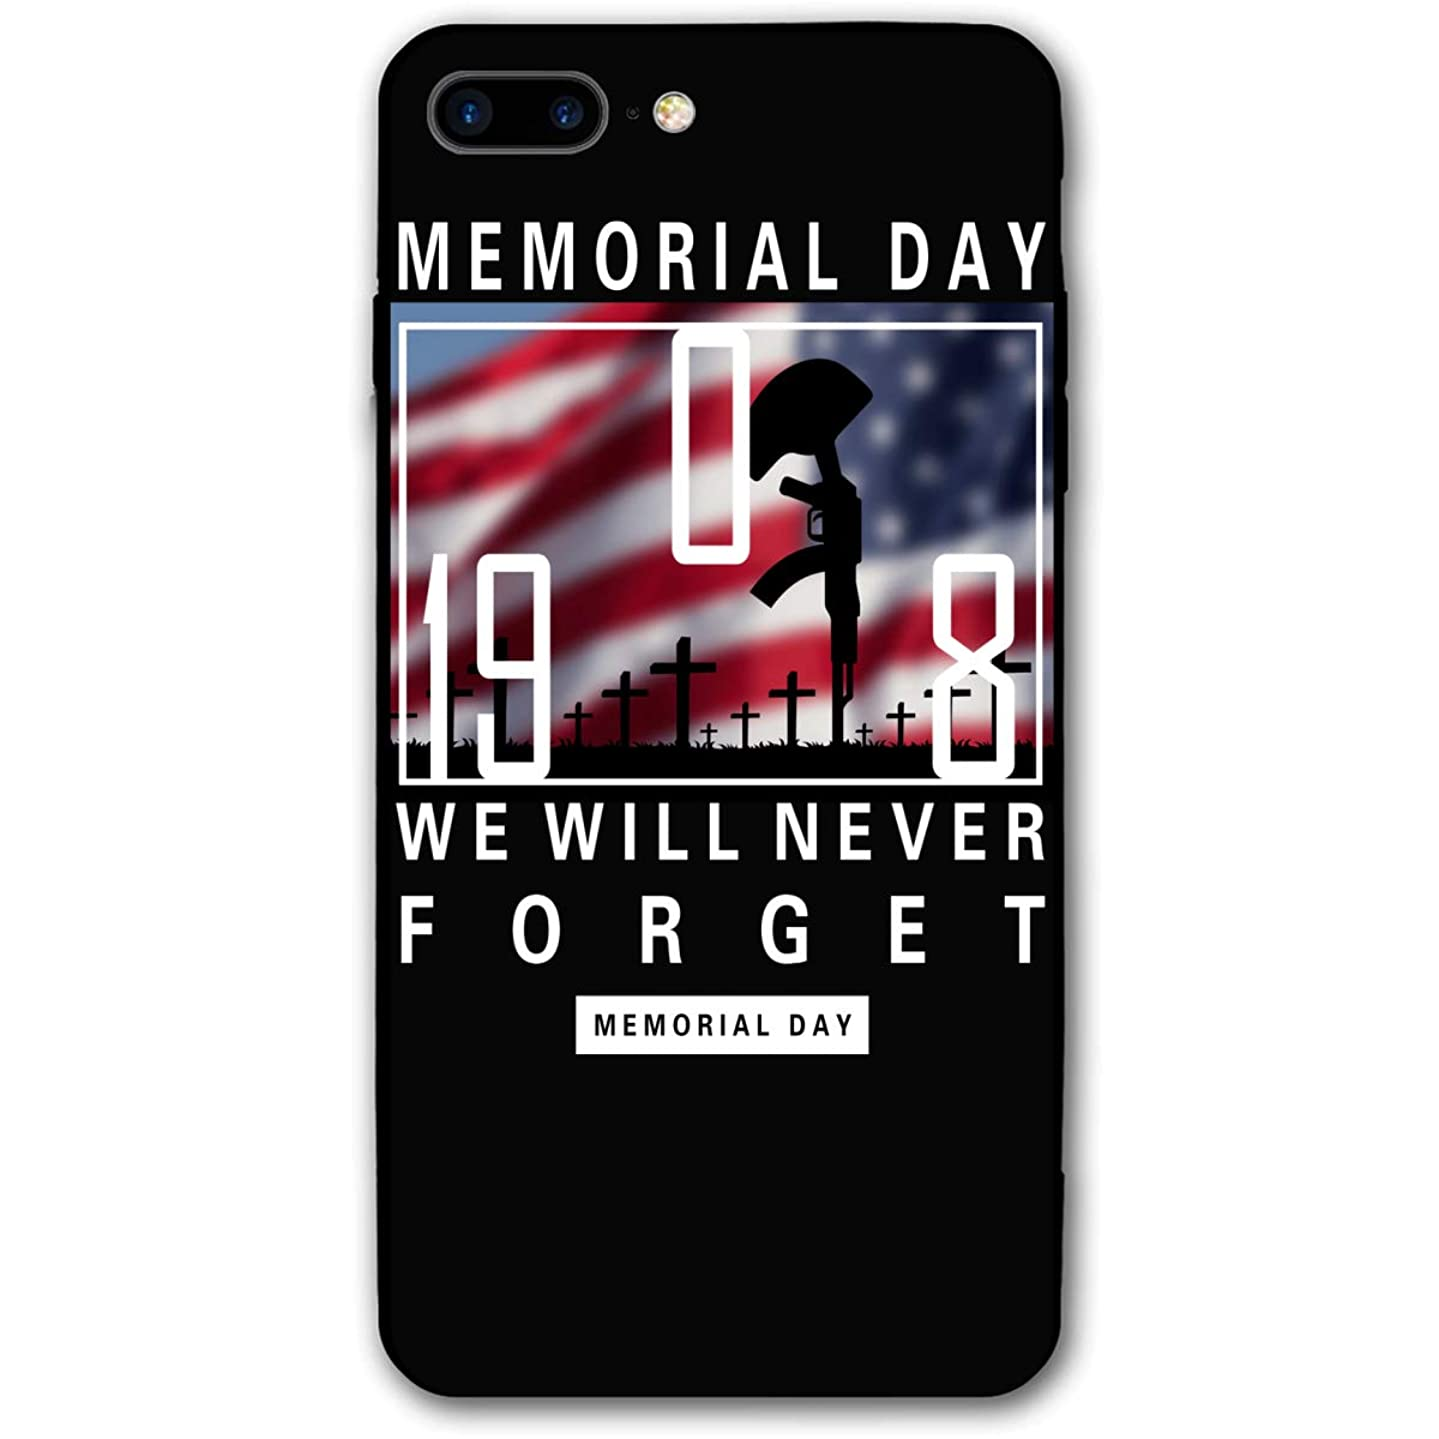 Xyybbn We Will Never Forget Memorial Day \r\nNice Skid-Proof Accessories Mobile Case for iPhone 7Plus/8Plus